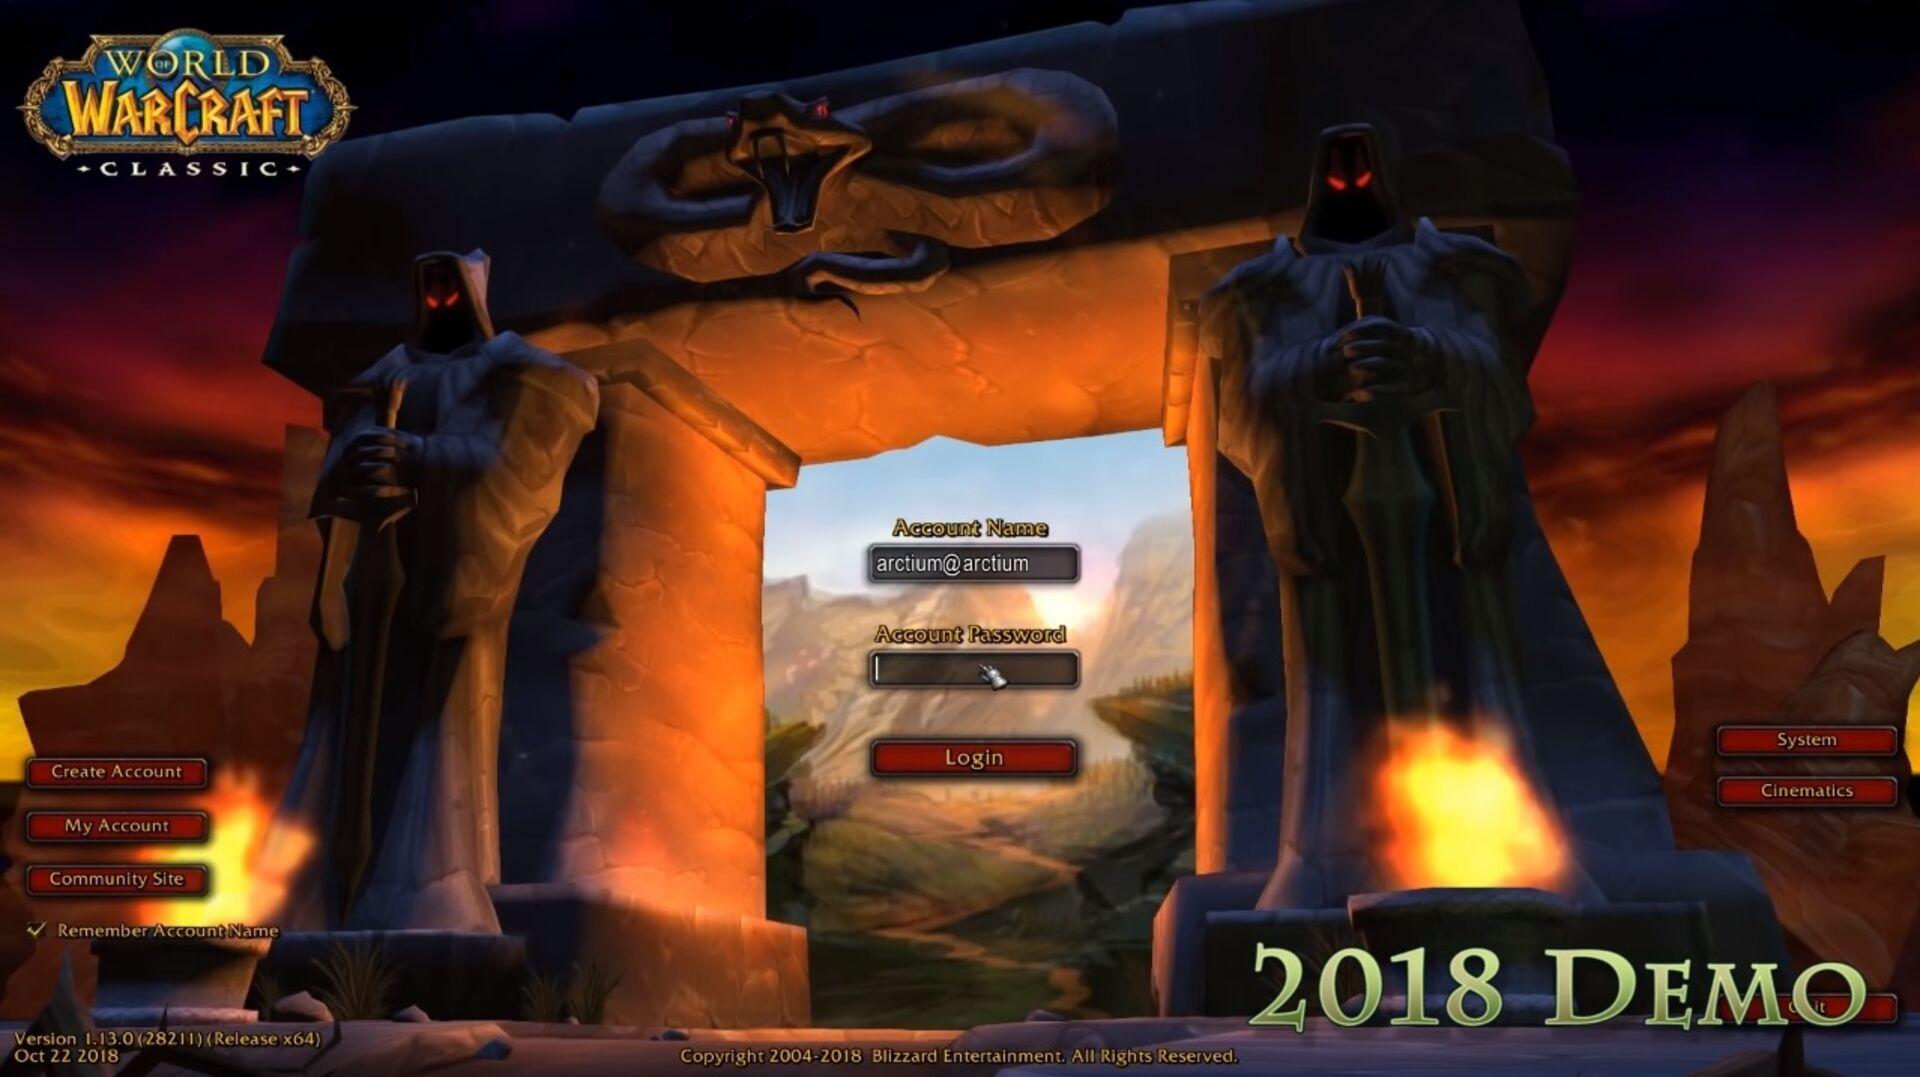 People have cracked open the World of Warcraft classic demo and are